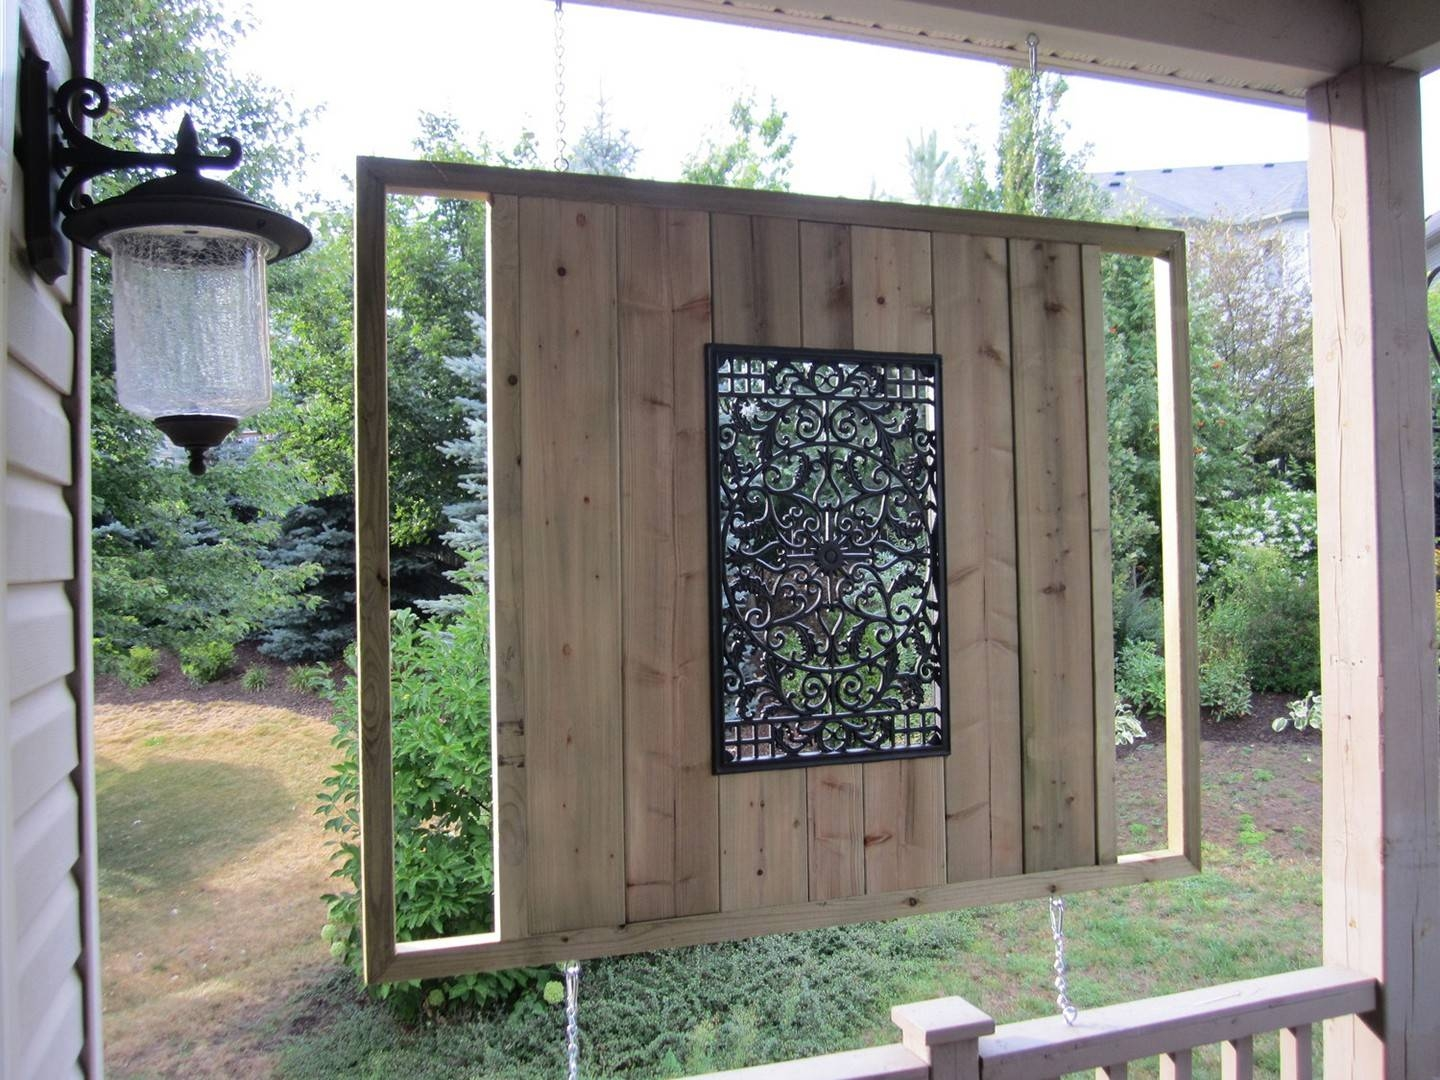 Exterior: Outdoor Wall Art With Wrought Iron Outdoor Decor And Pertaining To Most Recent Outdoor Metal Wall Art (View 5 of 20)